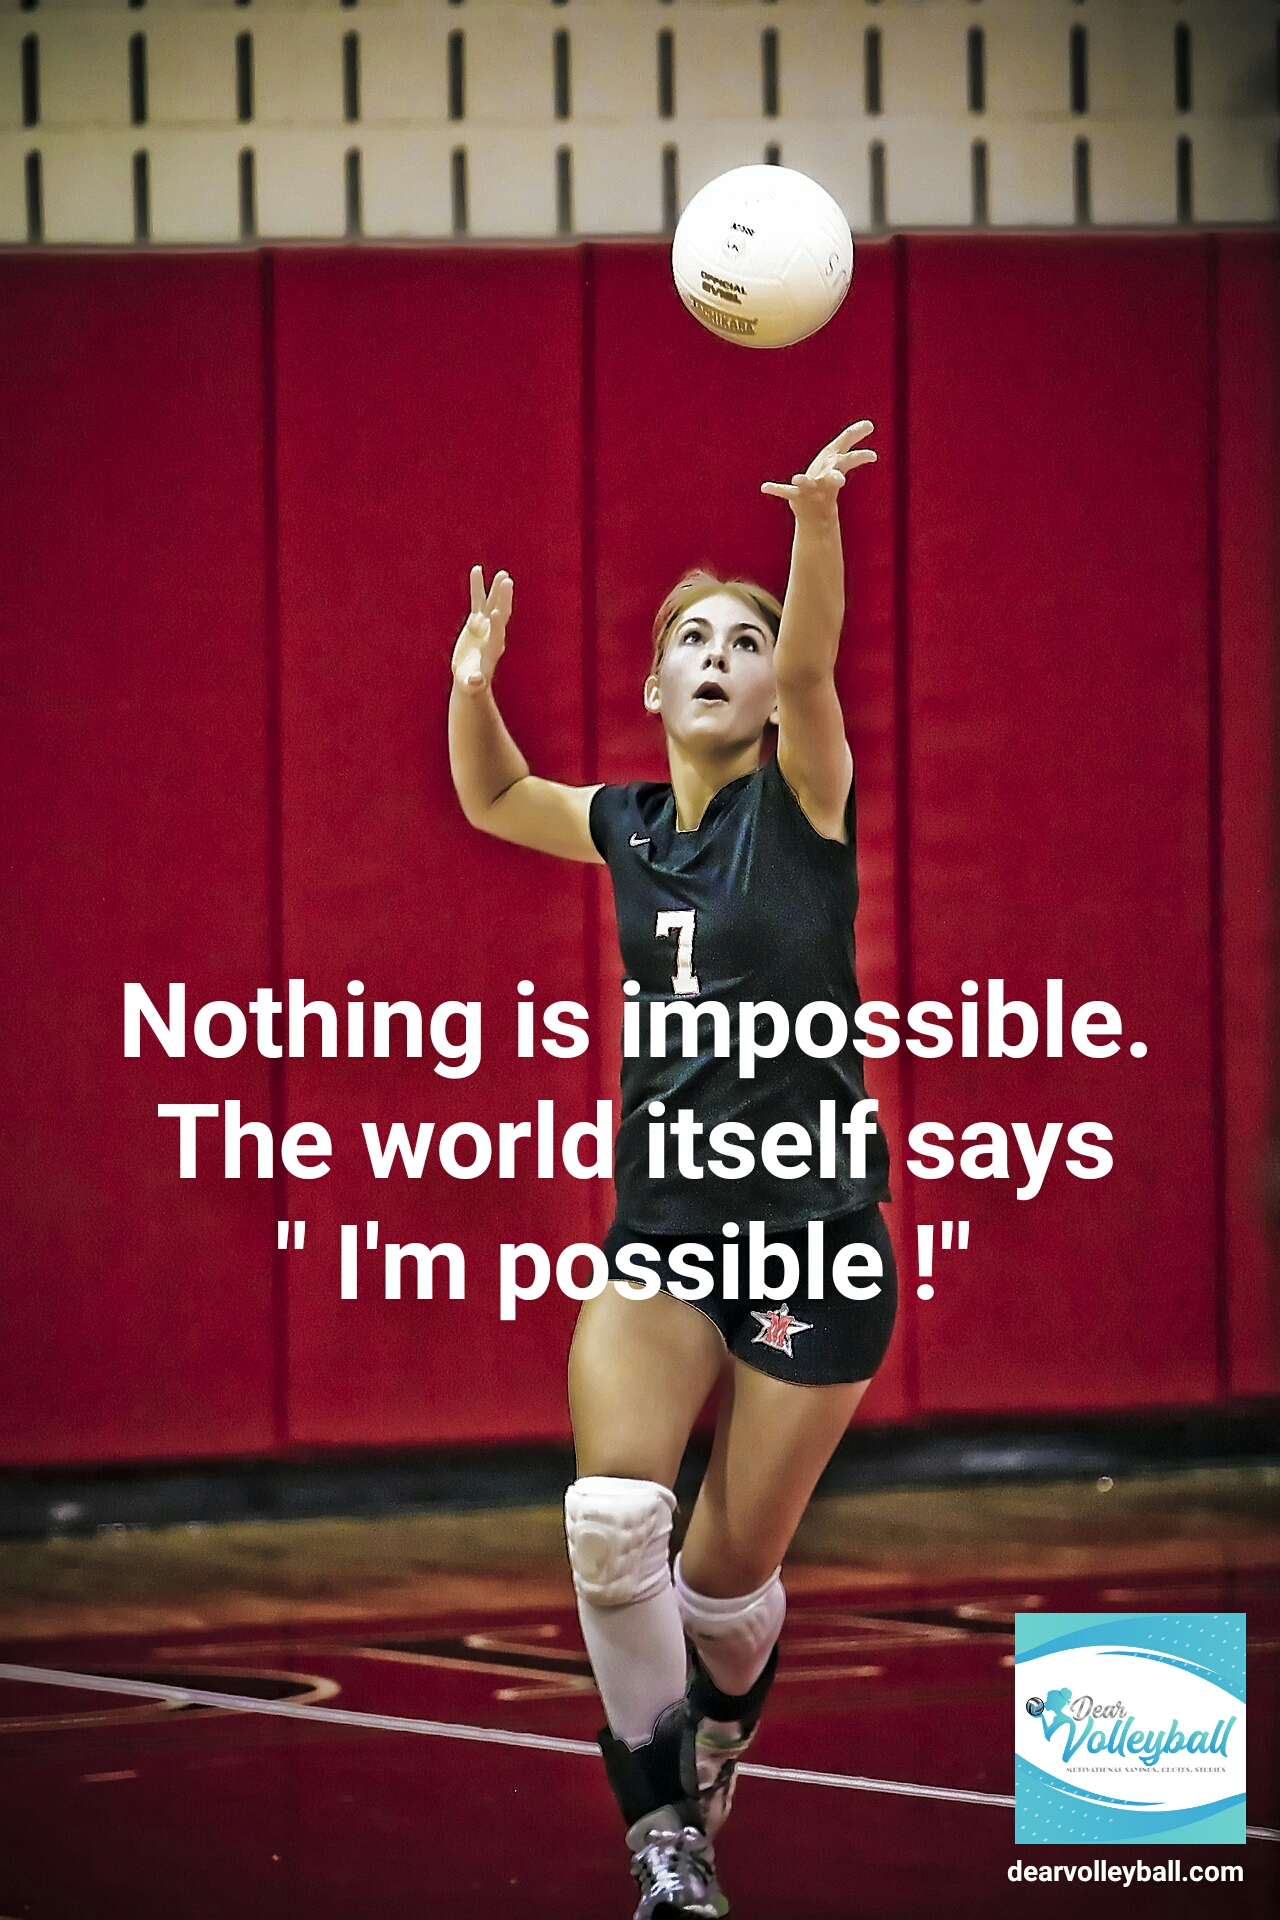 Nothing is impossible.